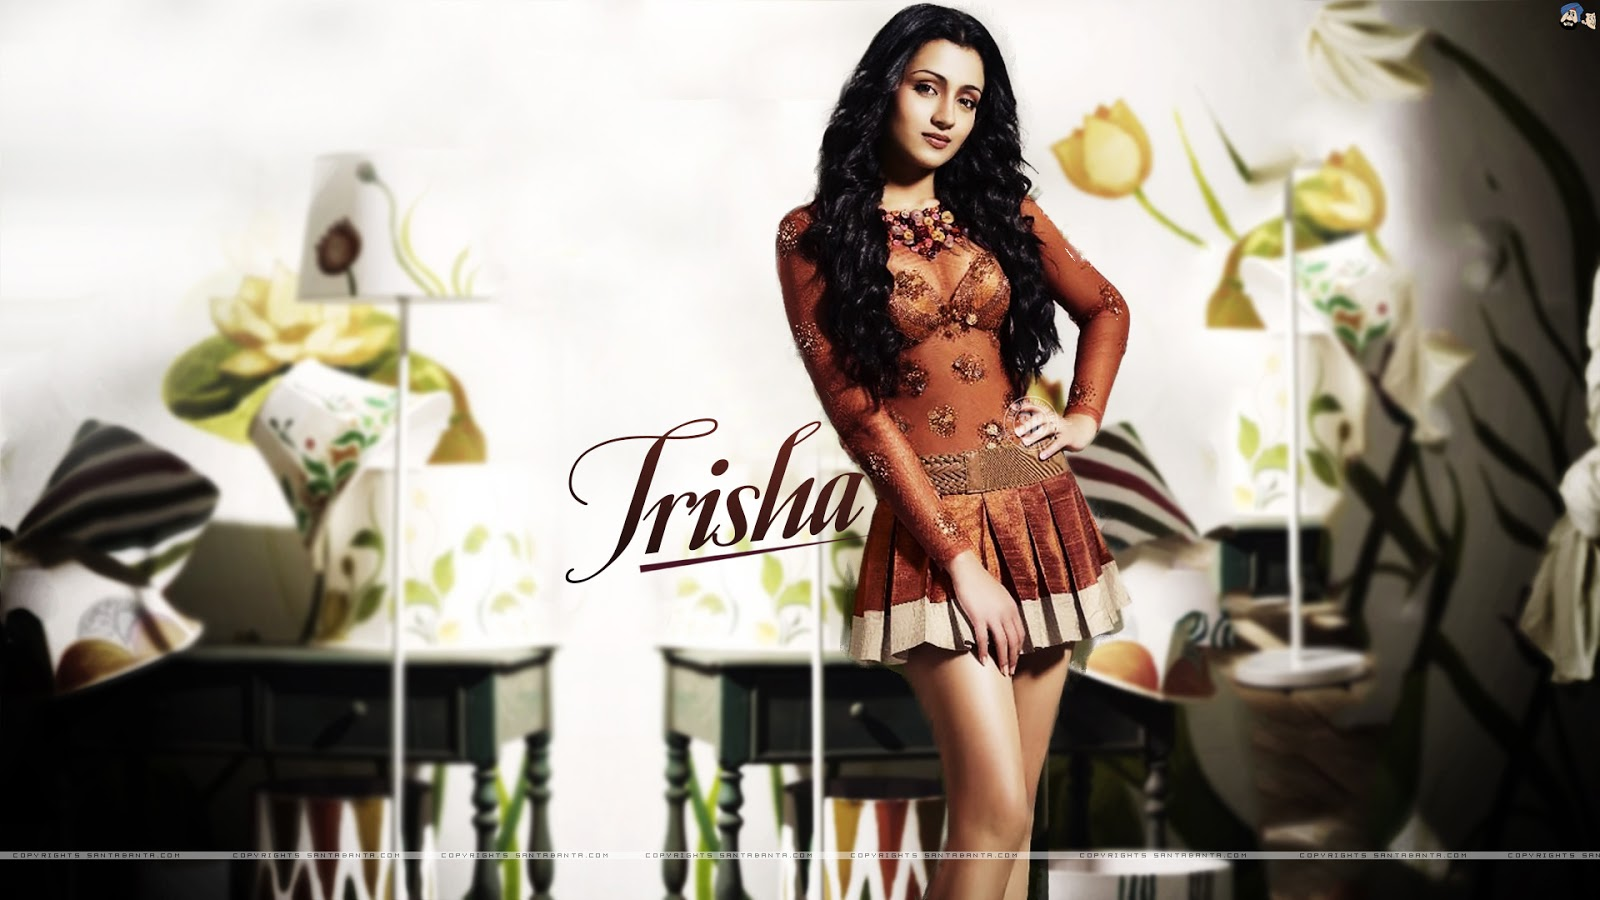 Freshers Jobs,Interview Questions,Actress Gallery,Tips: trisha photo ...